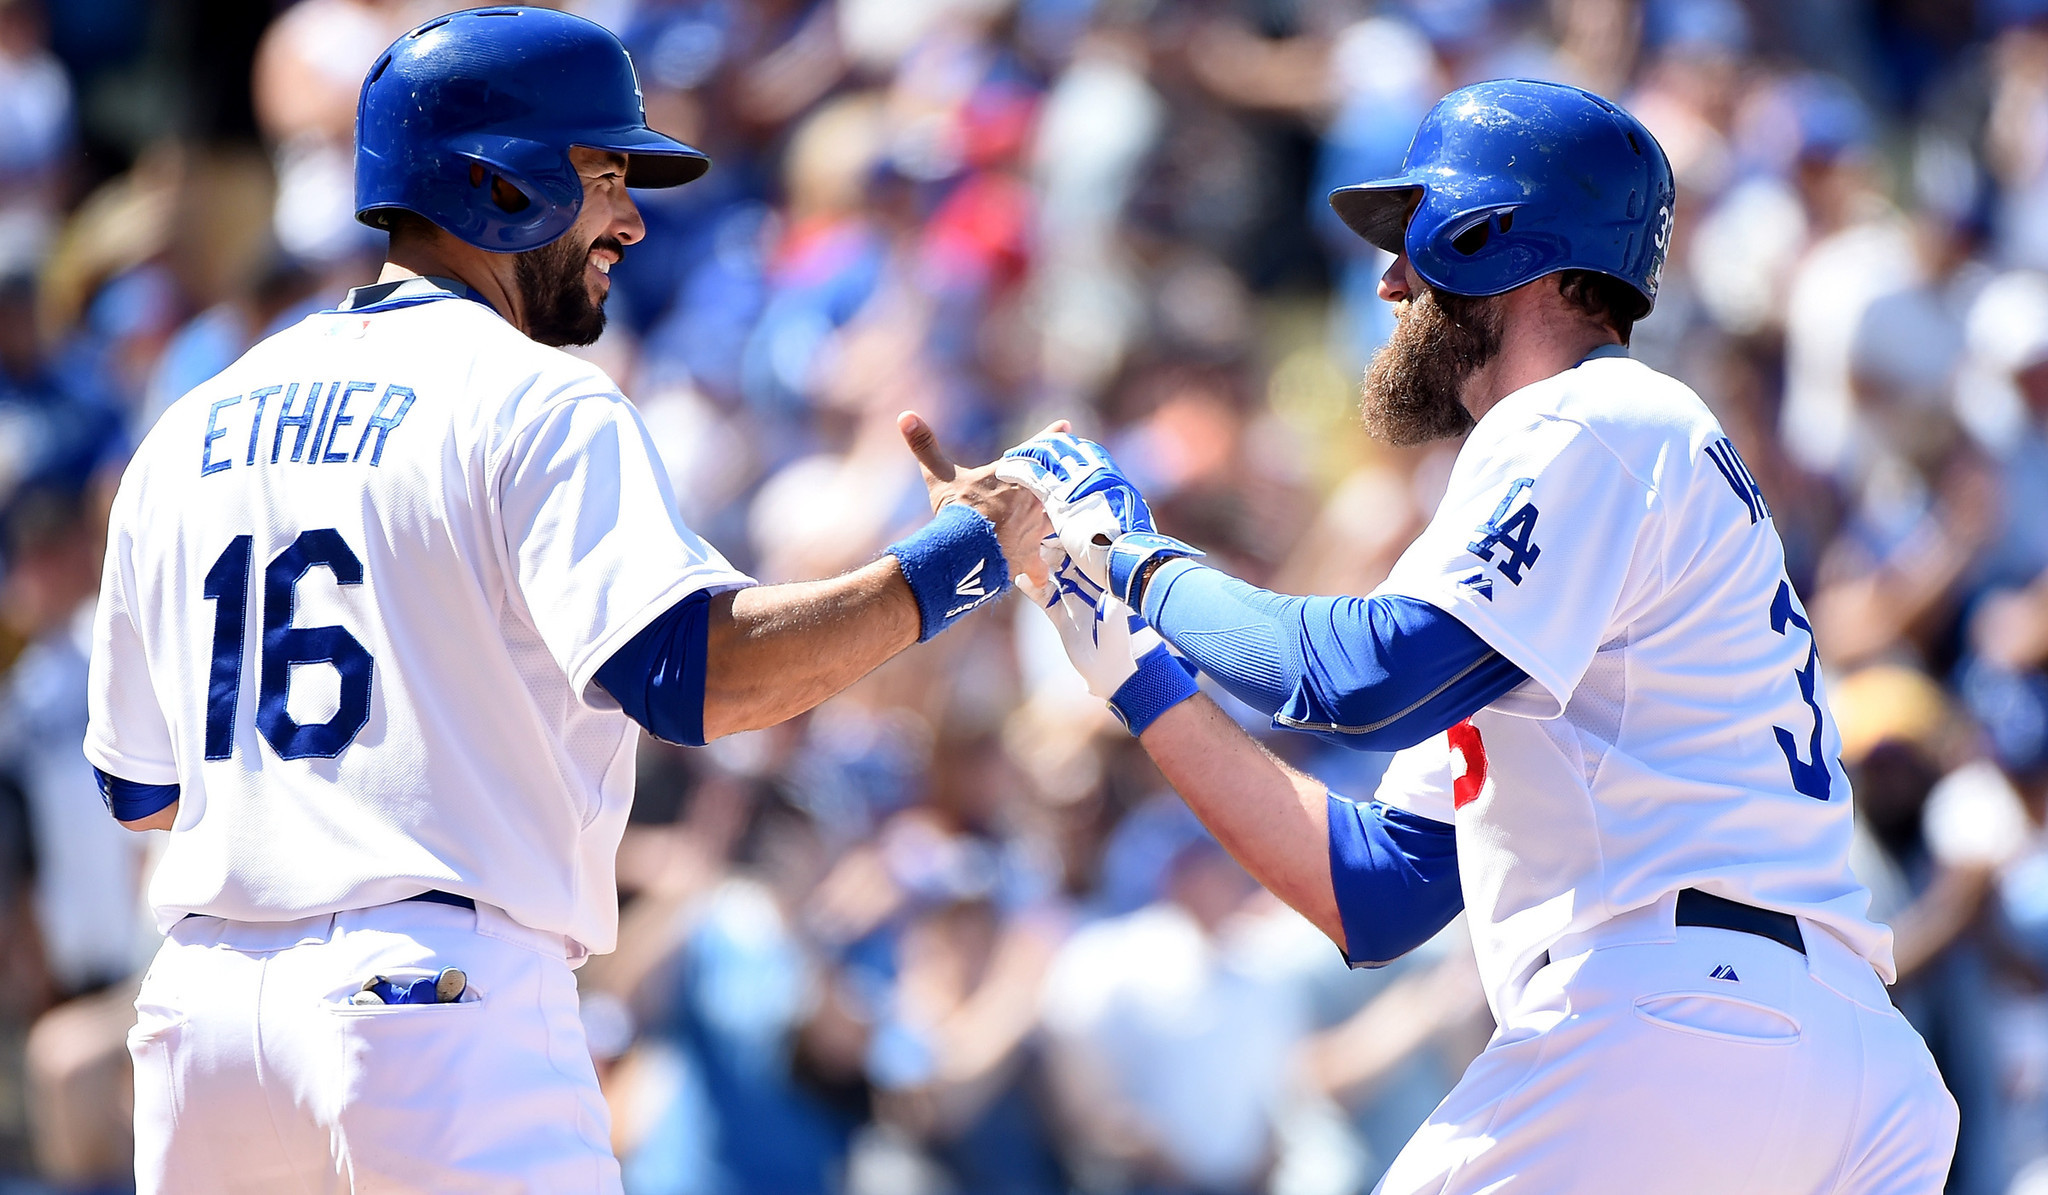 Dodgers shut out Rockies, 7-0, for series sweep